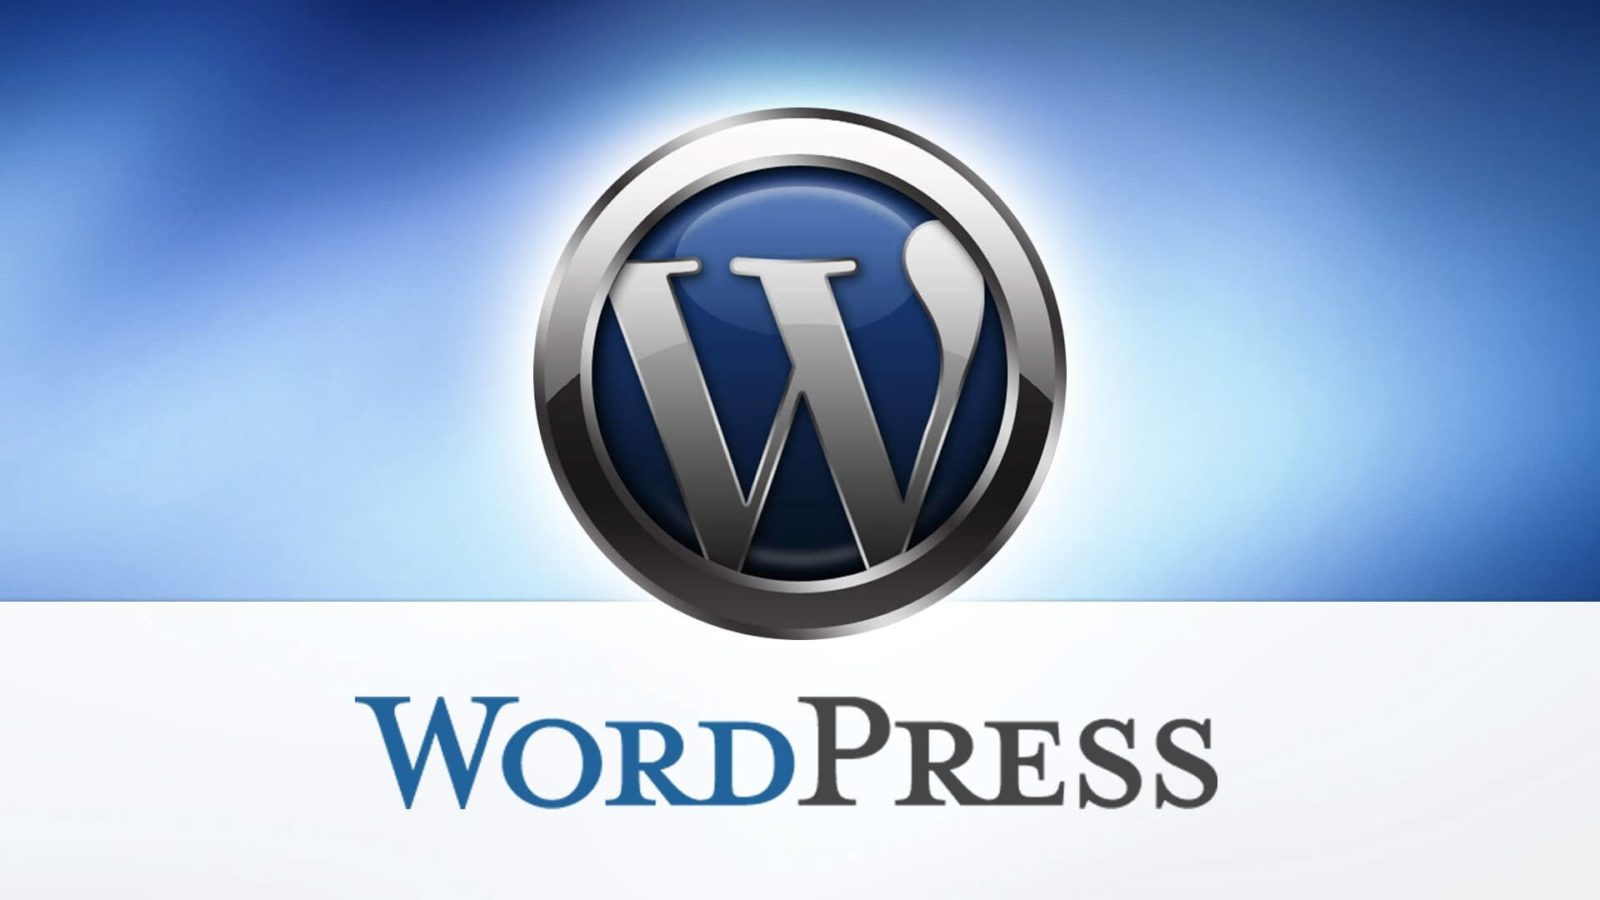 Windows'a WordPress programı geldi! Hemen indirin! 1